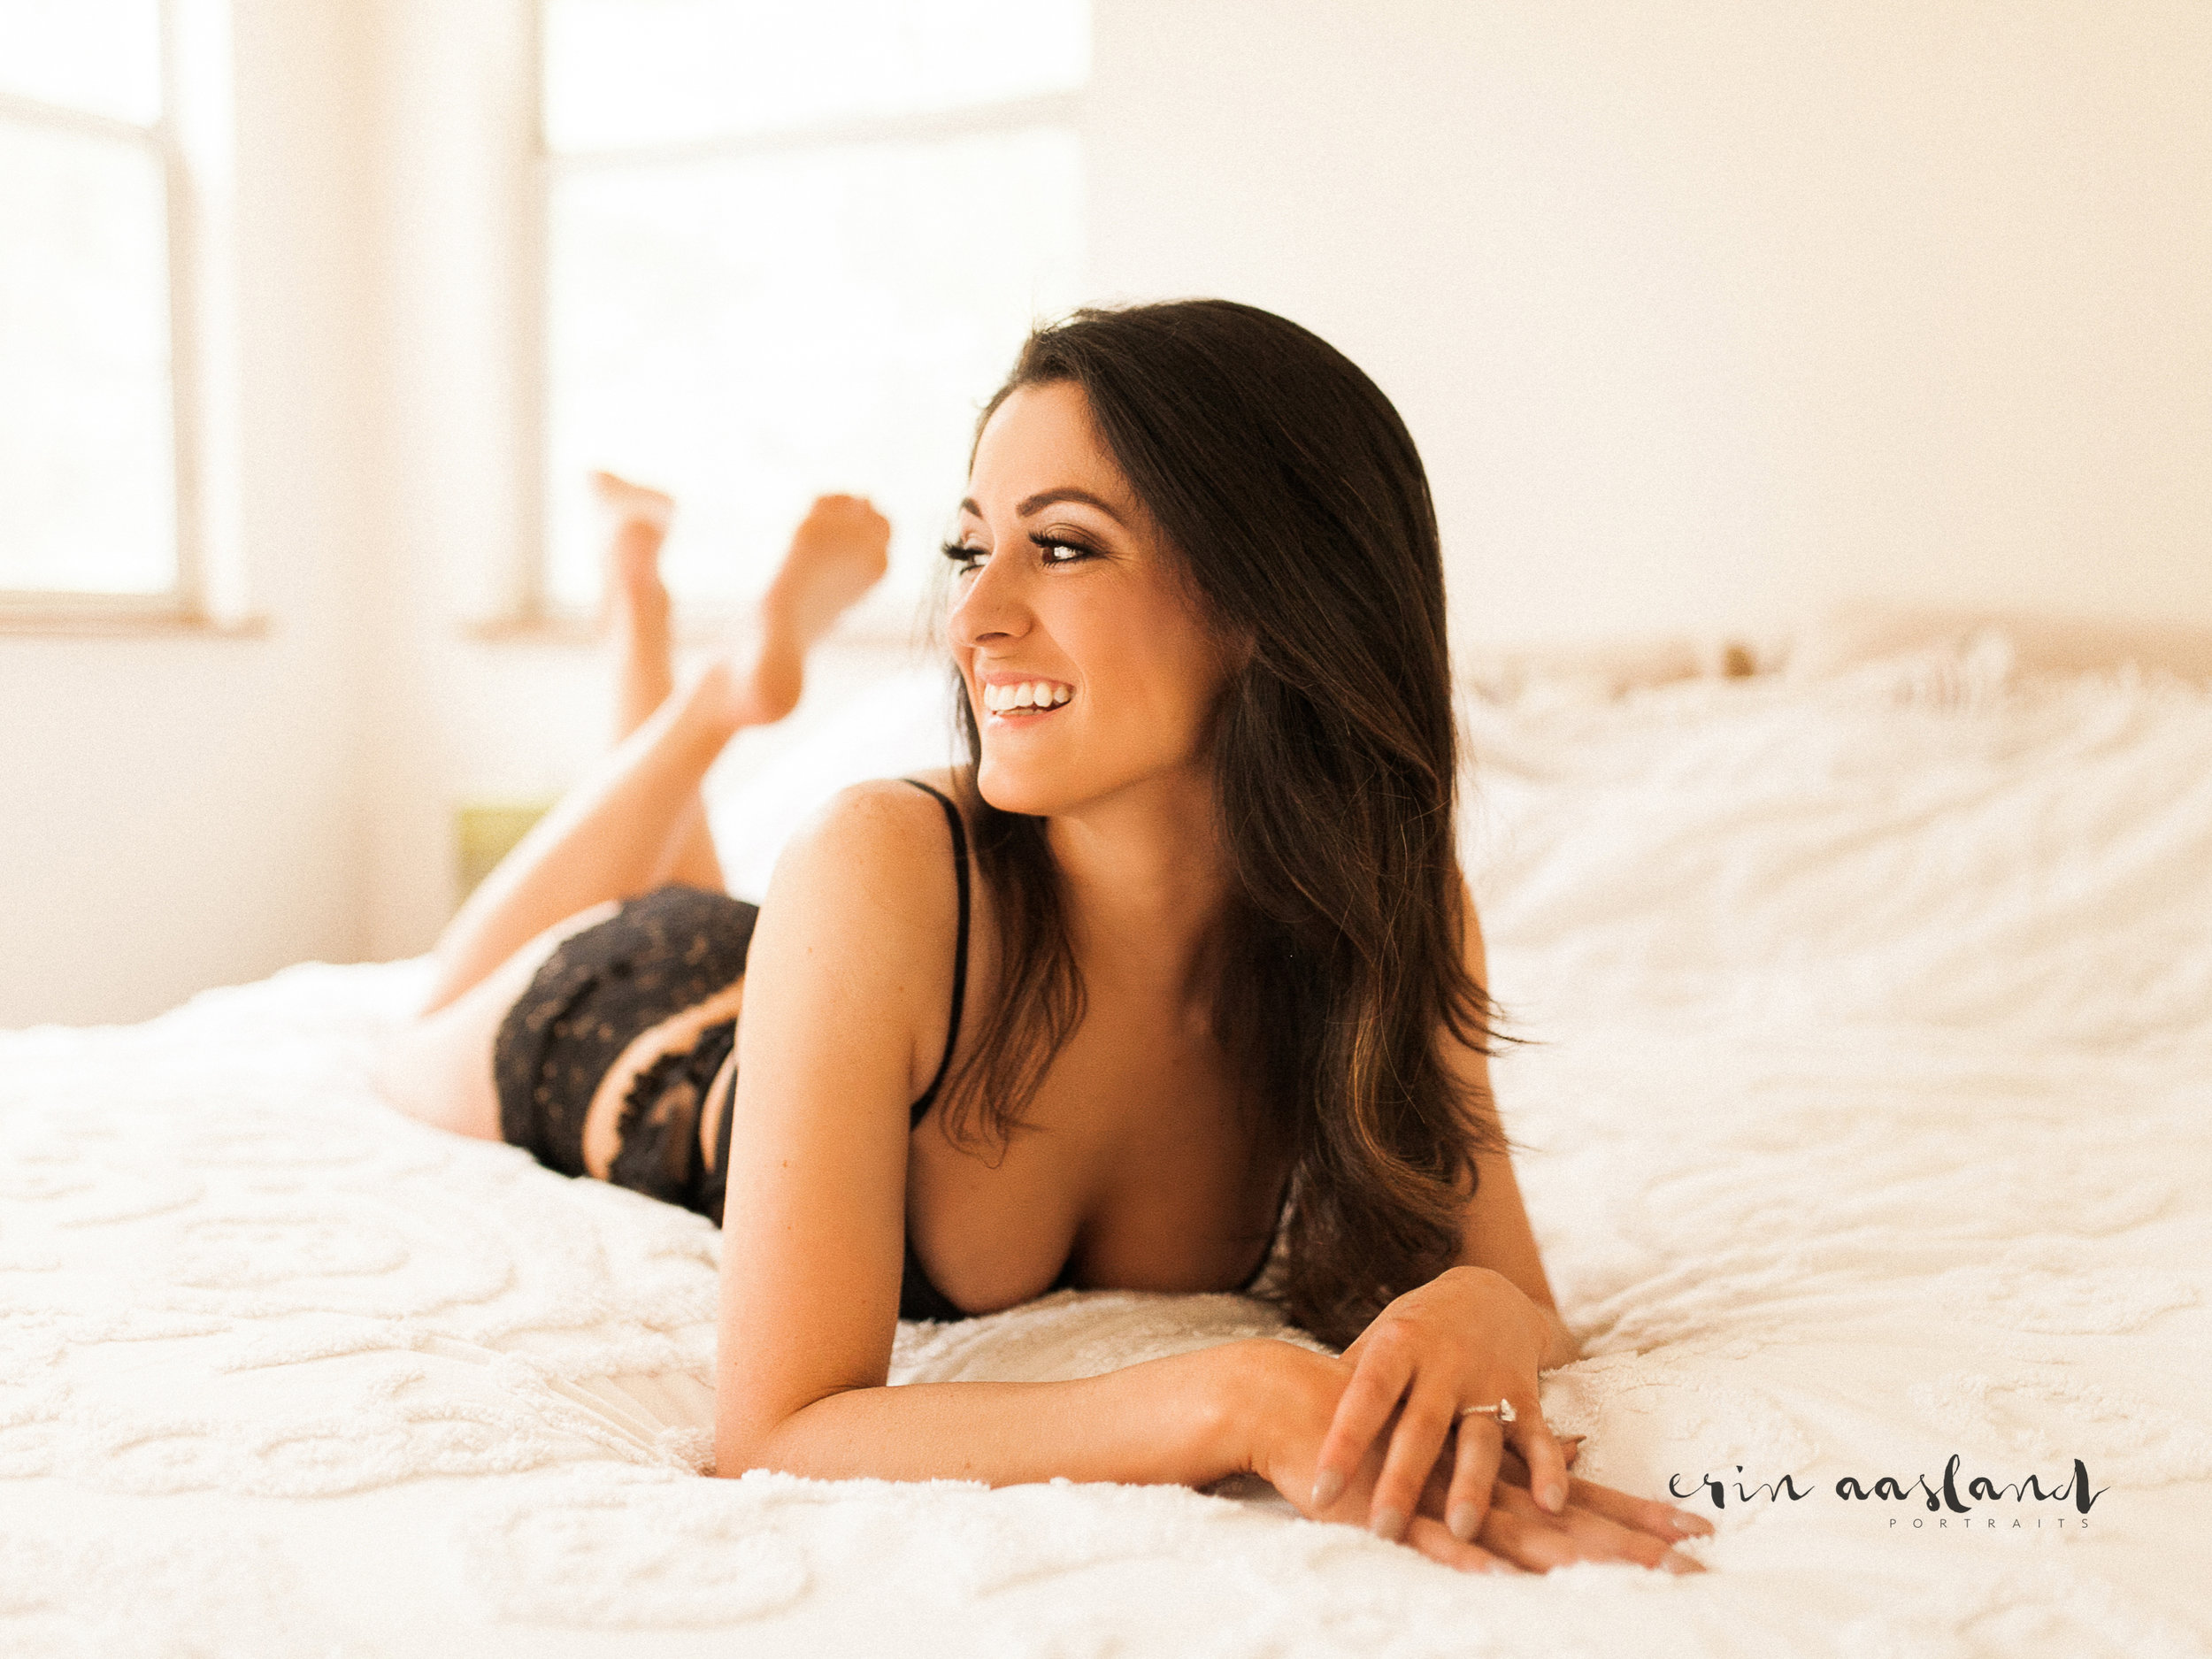 Erin Aasland Snoqualmie Boudoir Photography In Home laying on bed